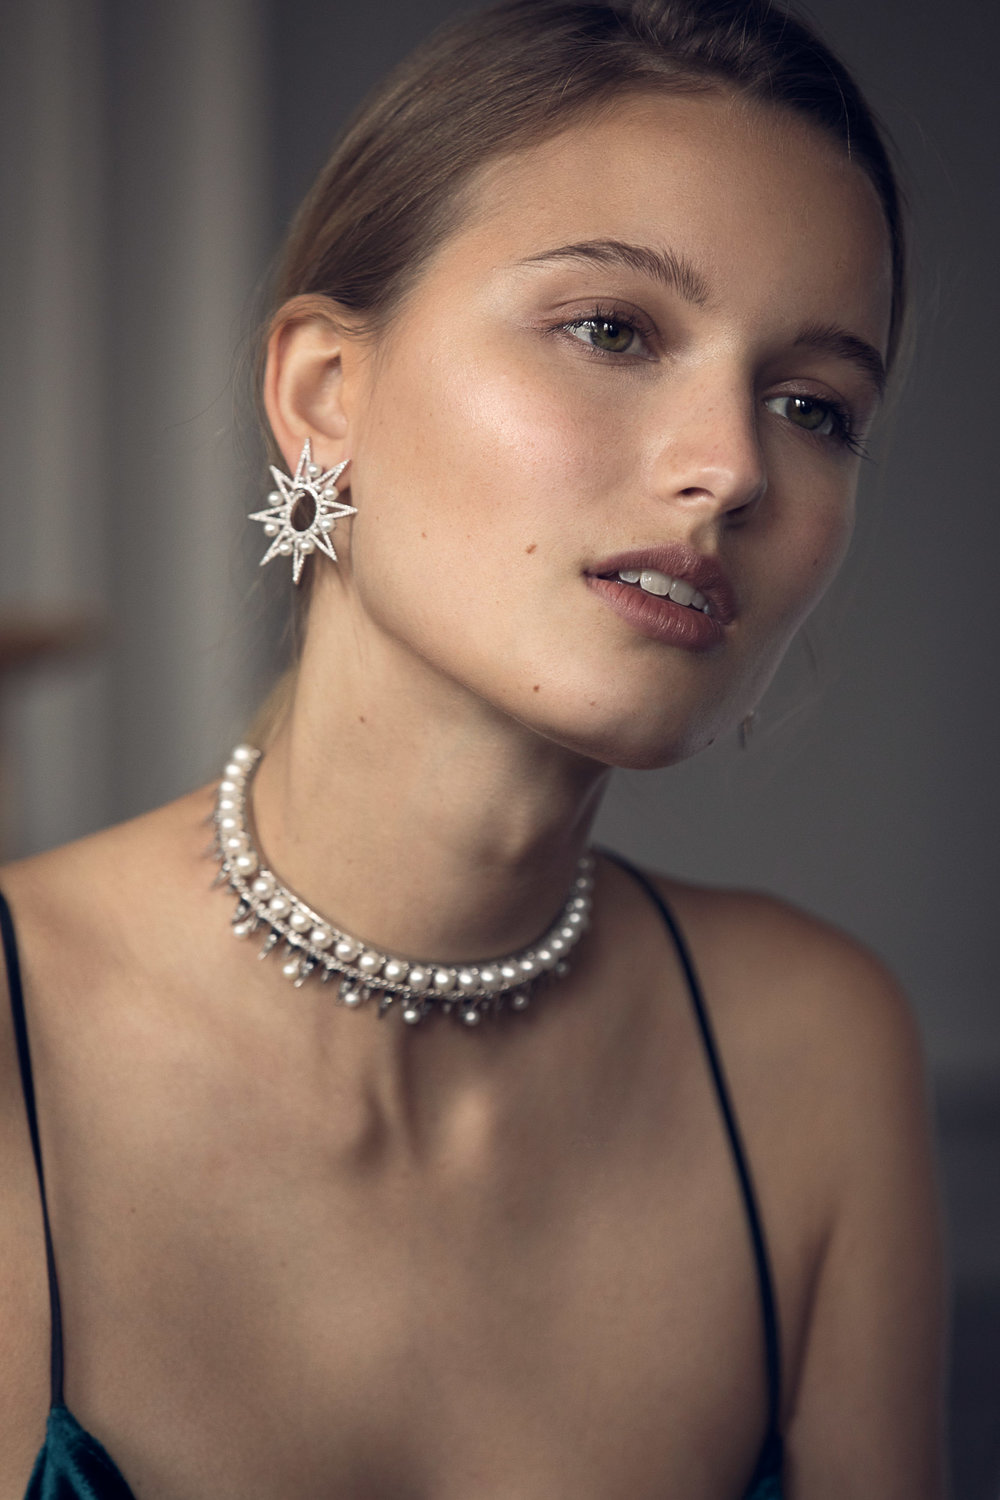 Campaign for Colette Jewelry in Paris